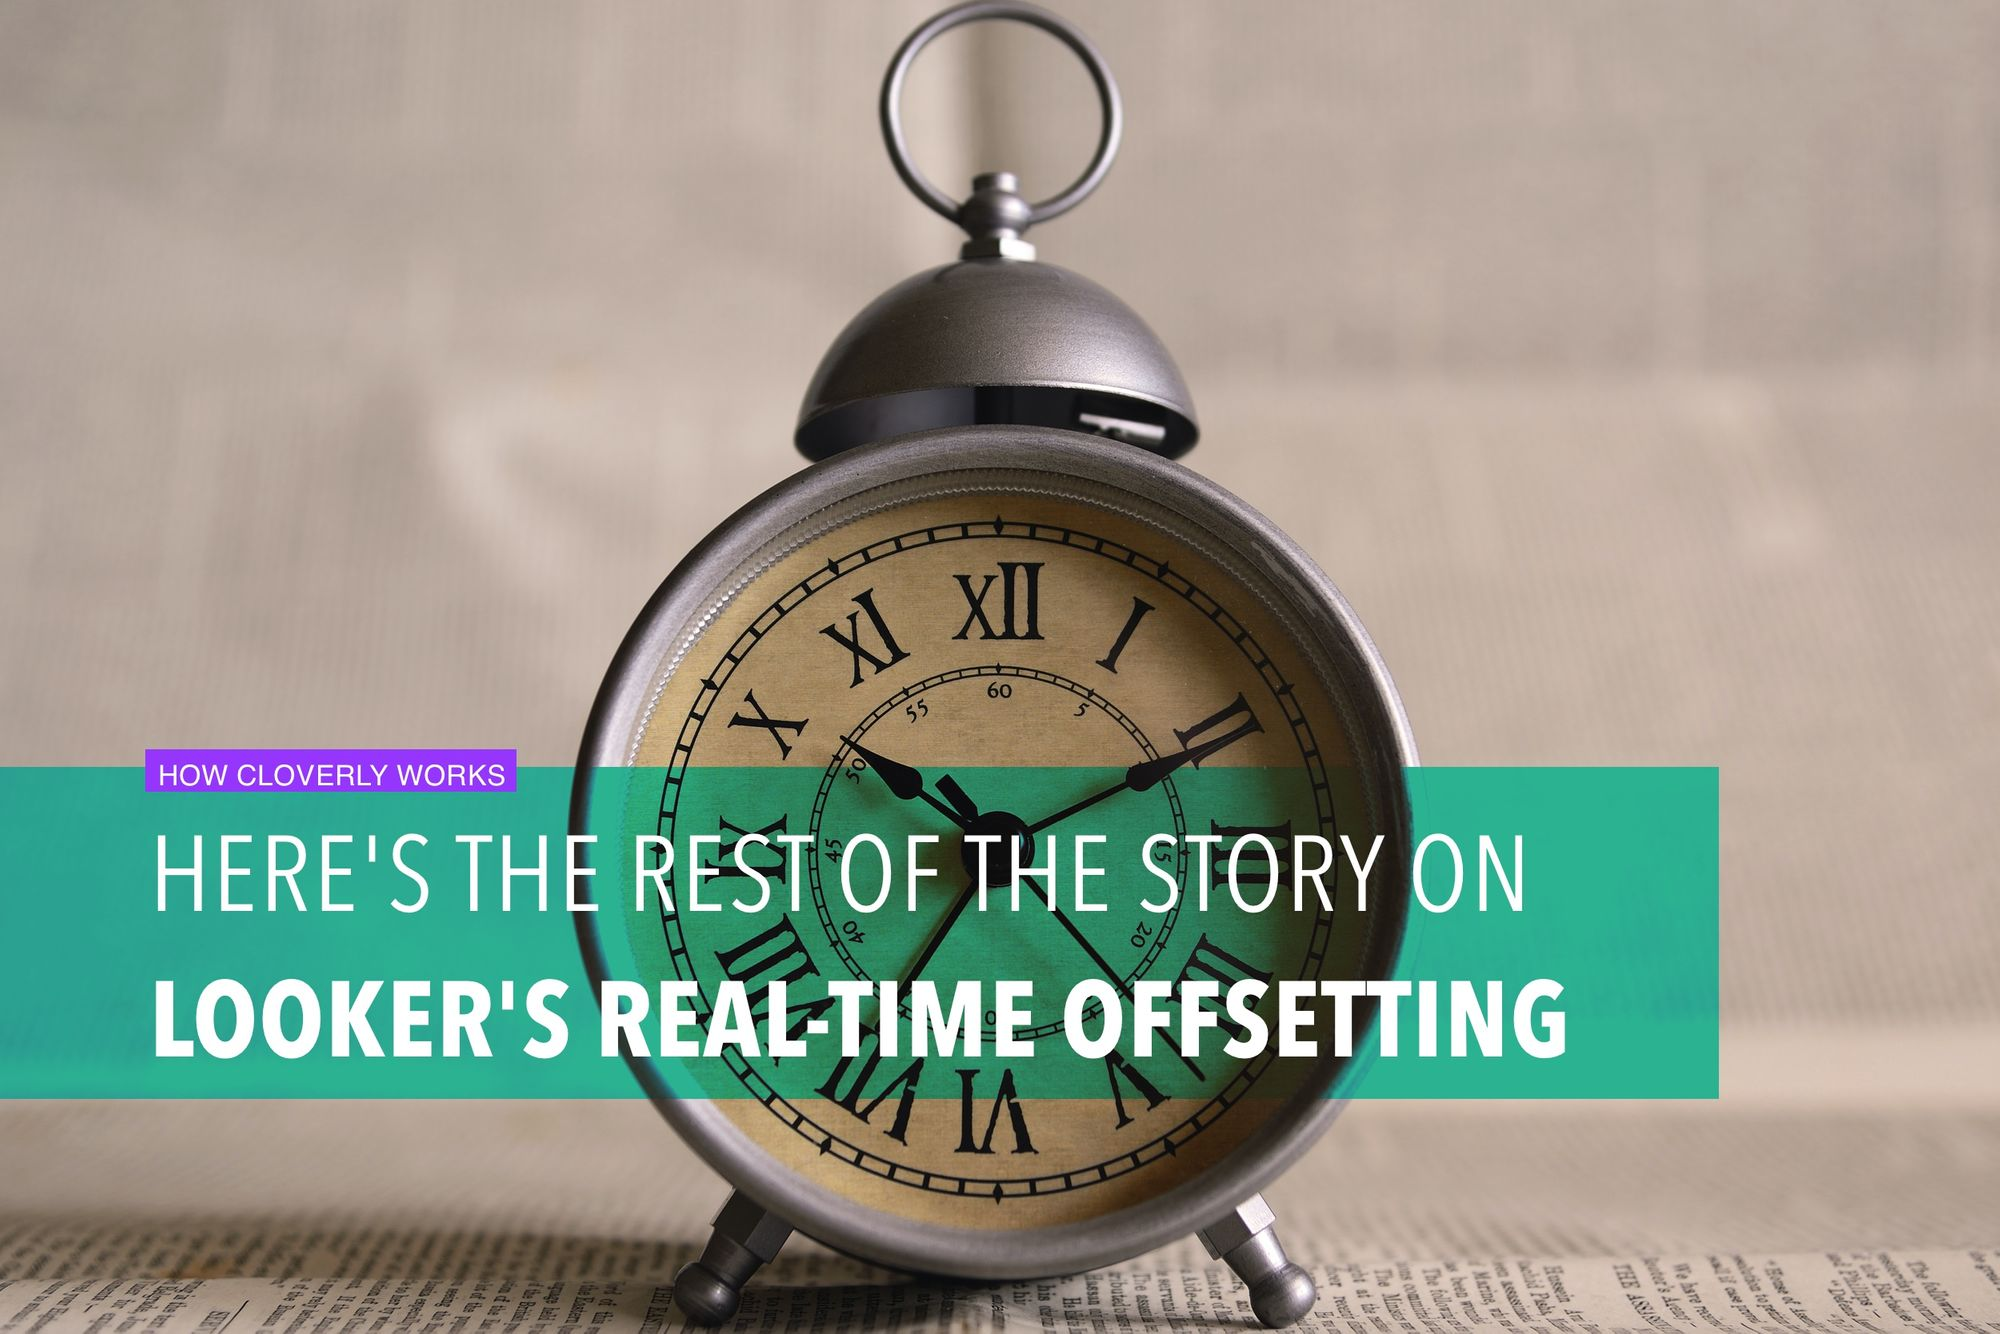 Here's the rest of the story on Looker's real-time offsetting